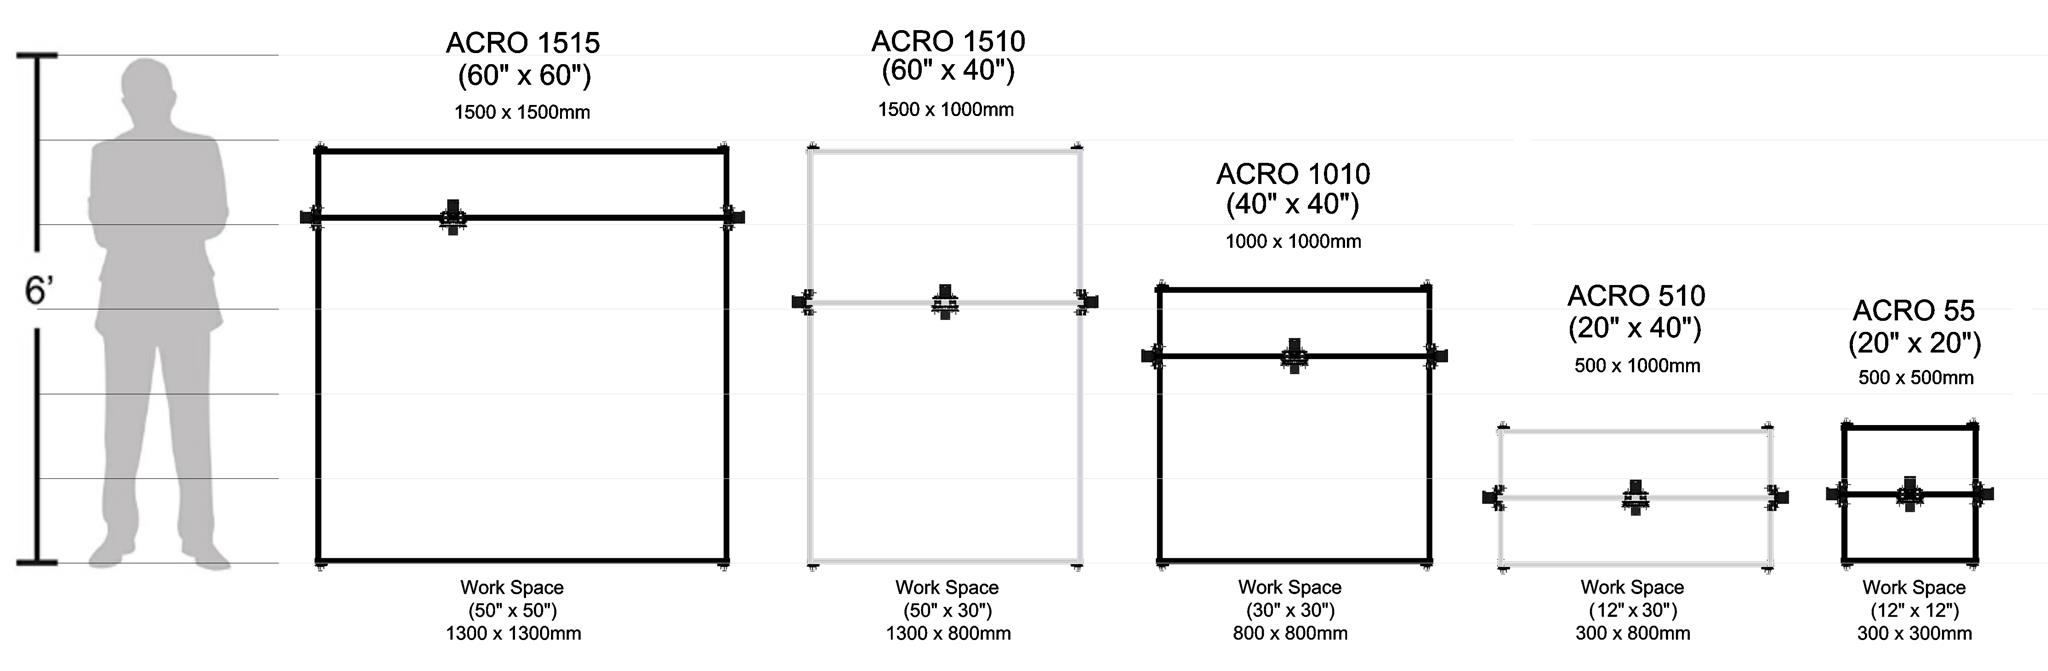 openbuilds-acro-laser-v2-64-sizes.png